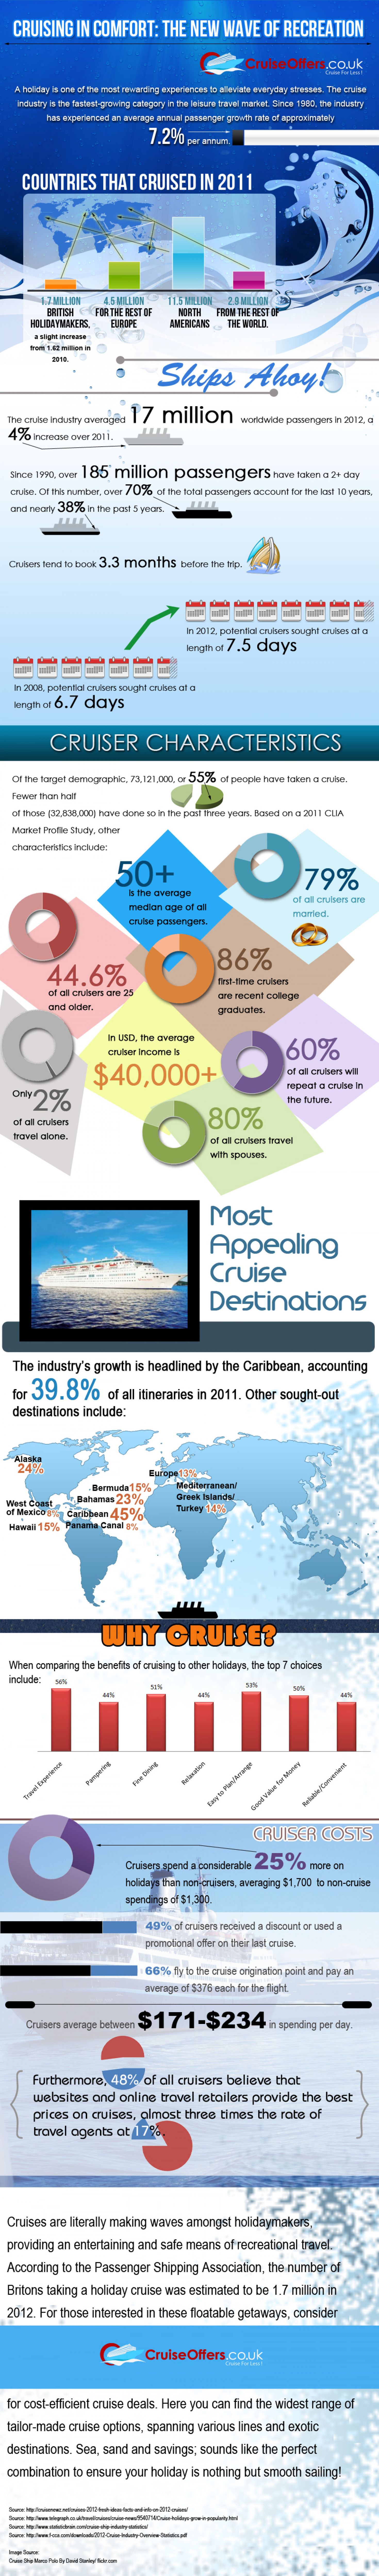 Cruising in Comfort : The new wave of Recreation Infographic